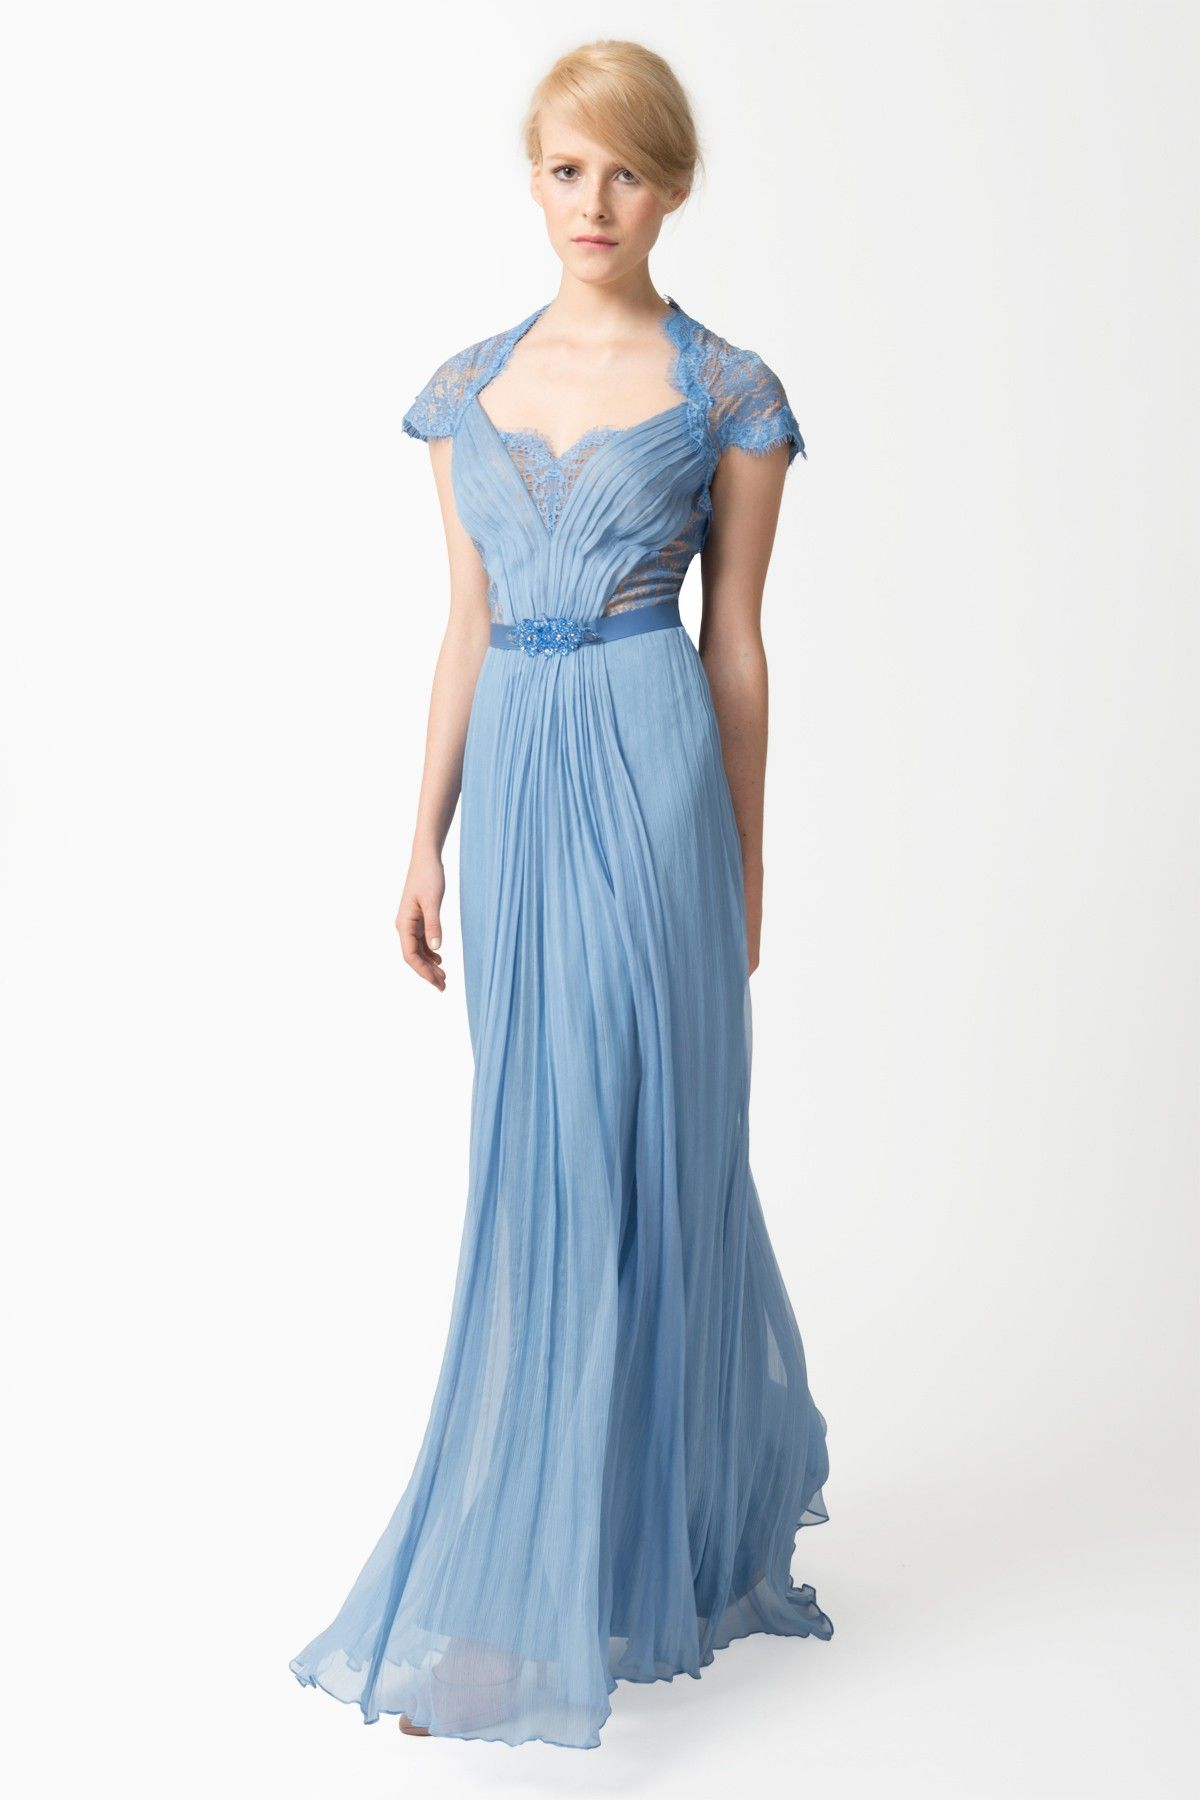 Crinkle Chiffon and Lace Gown with Jeweled Belt in Blue Stone ...